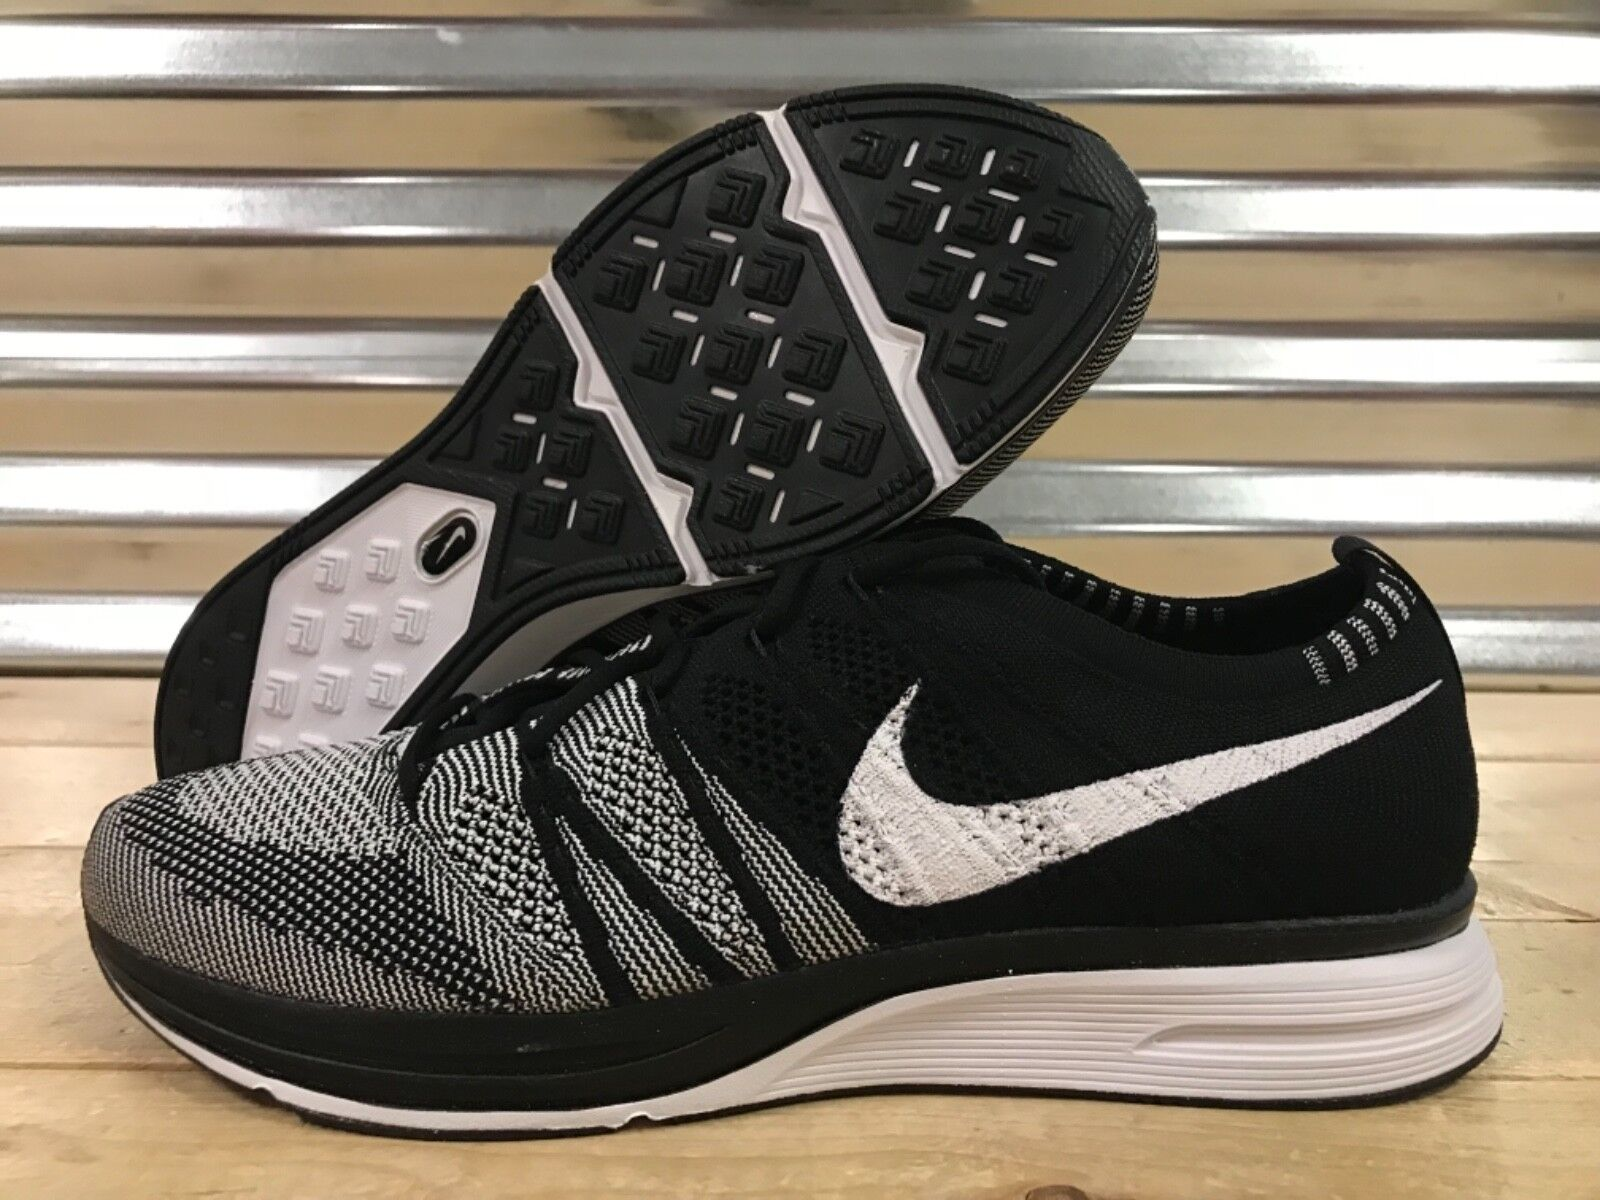 Nike Flyknit Trainer shoes Oreo Black White Cookies SZ ( AH8396-005 )